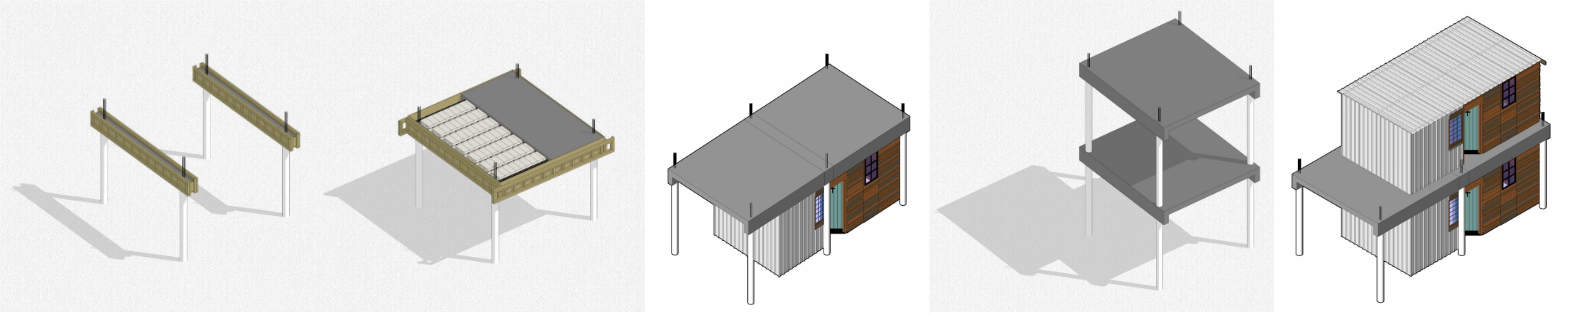 Plans for the Table Project. Image credit ©Hands of Honour,  Noero  Architect,  Bau  Collective